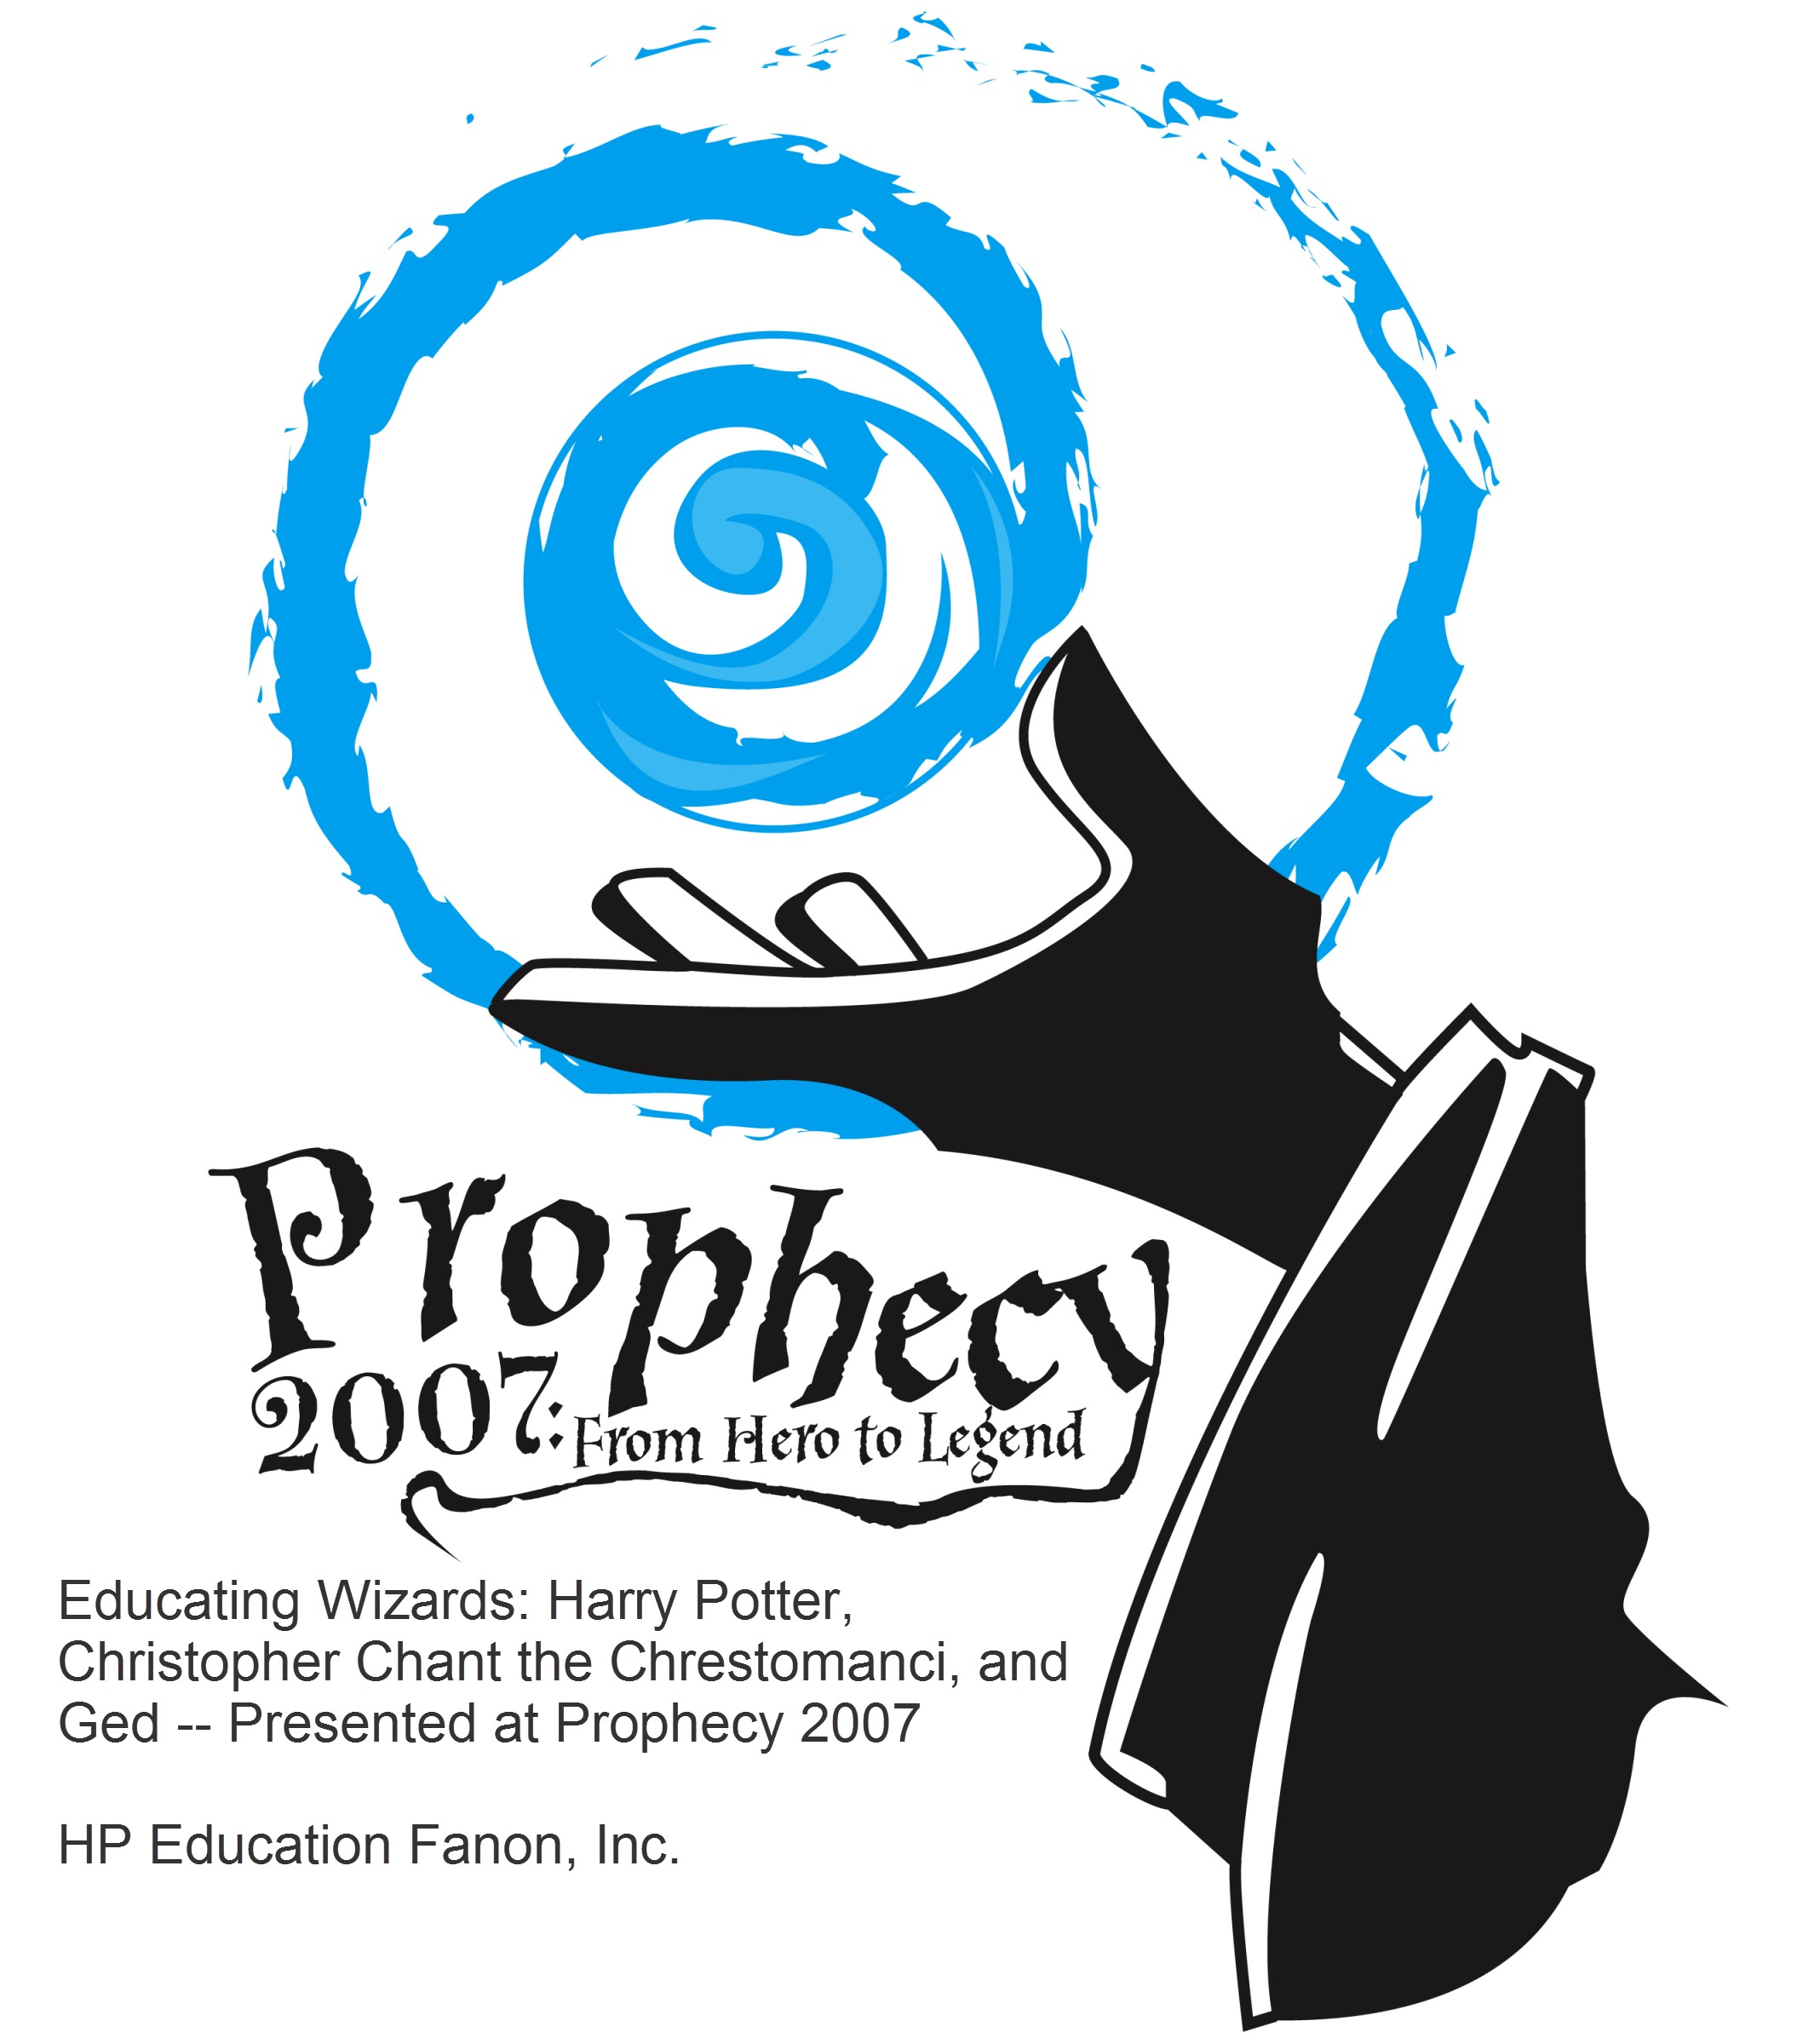 Educating Wizards: Harry Potter, Christopher Chant the Chrestomanci, and Ged -- Presented at Prophecy 2007